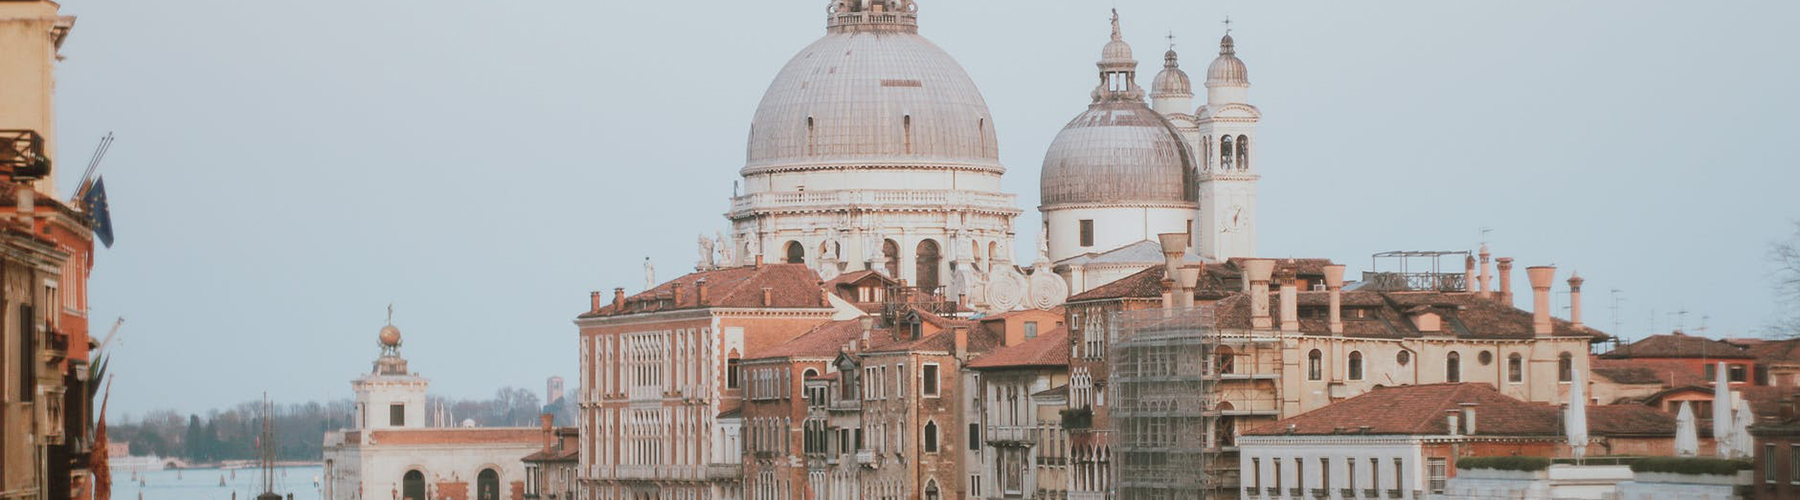 Venice – Hostels close to City Center. Maps for Venice, Photos and Reviews for each hostel in Venice.